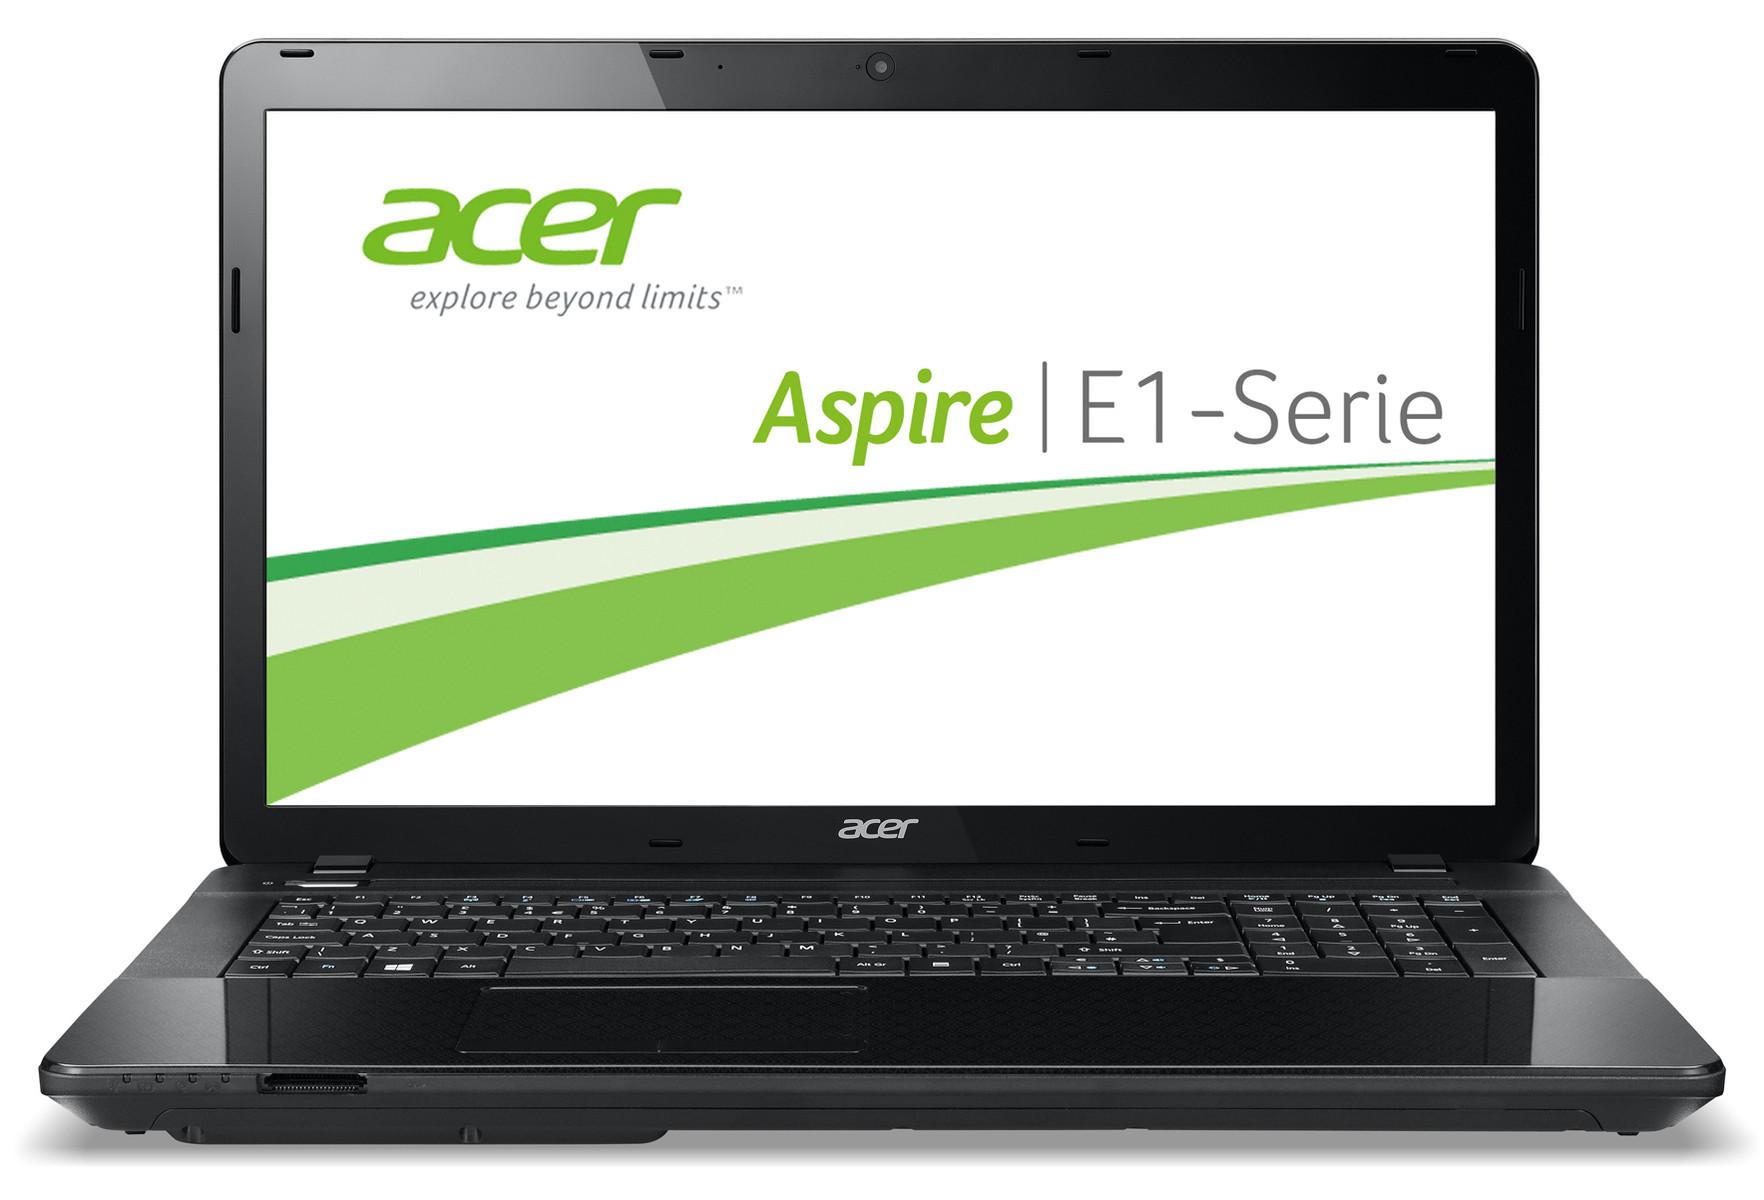 ACER ASPIRE E1-470G BROADCOM WLAN WINDOWS 8.1 DRIVER DOWNLOAD